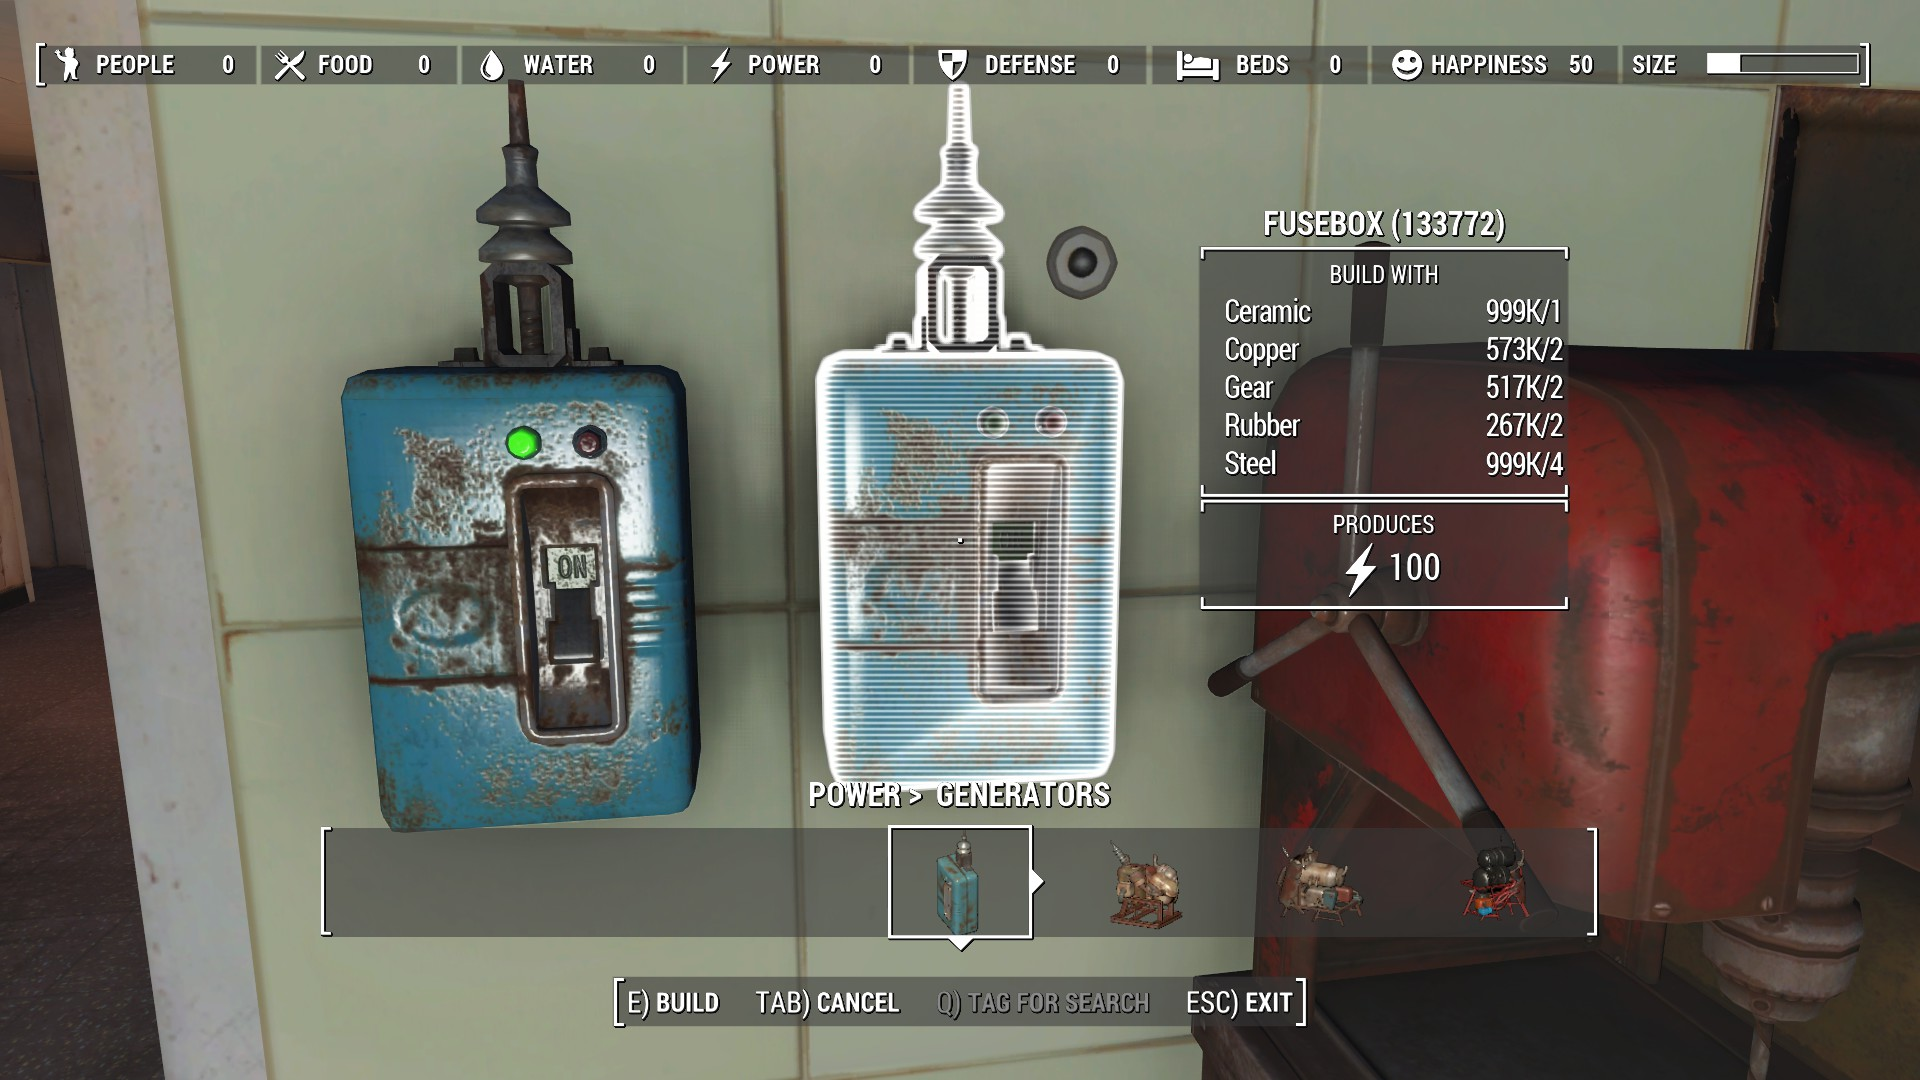 3429 0 1448747560 generator fusebox at fallout 4 nexus mods and community on fallout 4 fuse box mod